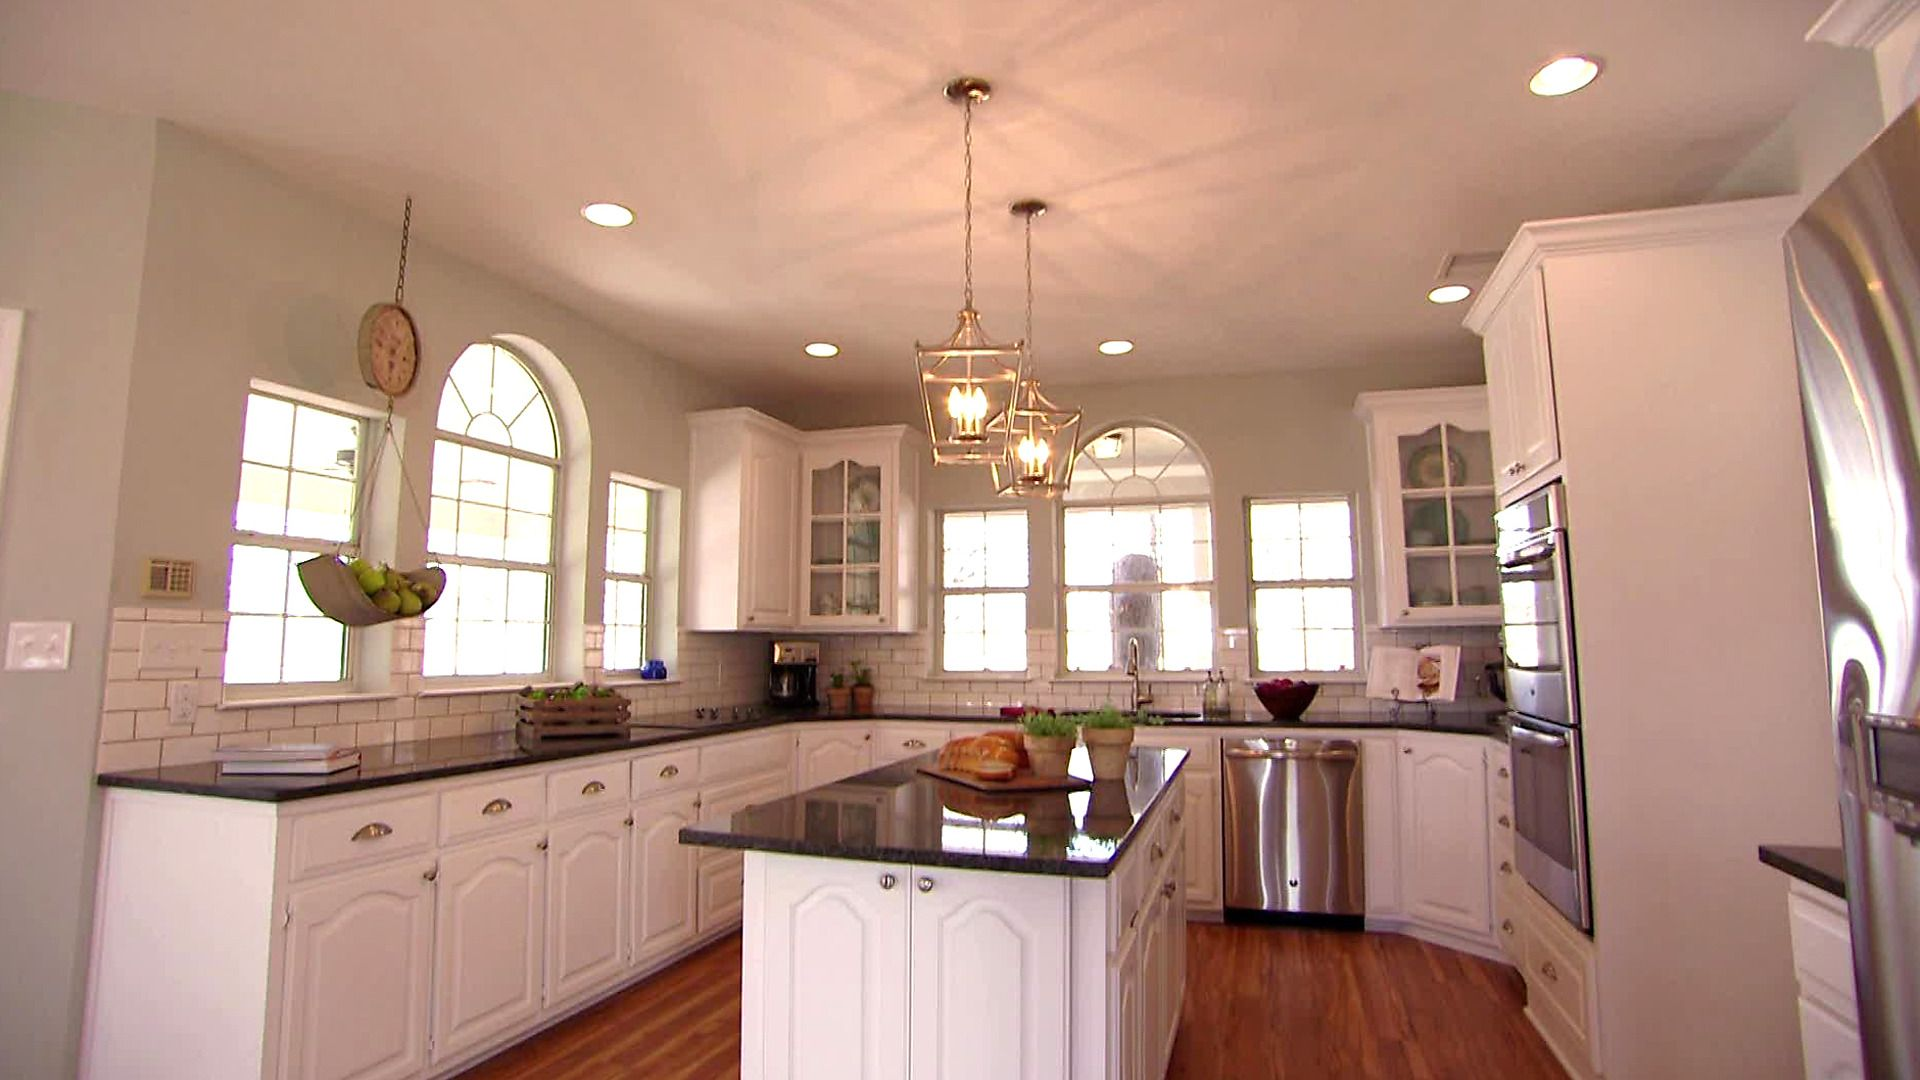 Fixer upper kitchen windows - Find This Pin And More On Kitchen Ideas Hgtv Fixer Upper